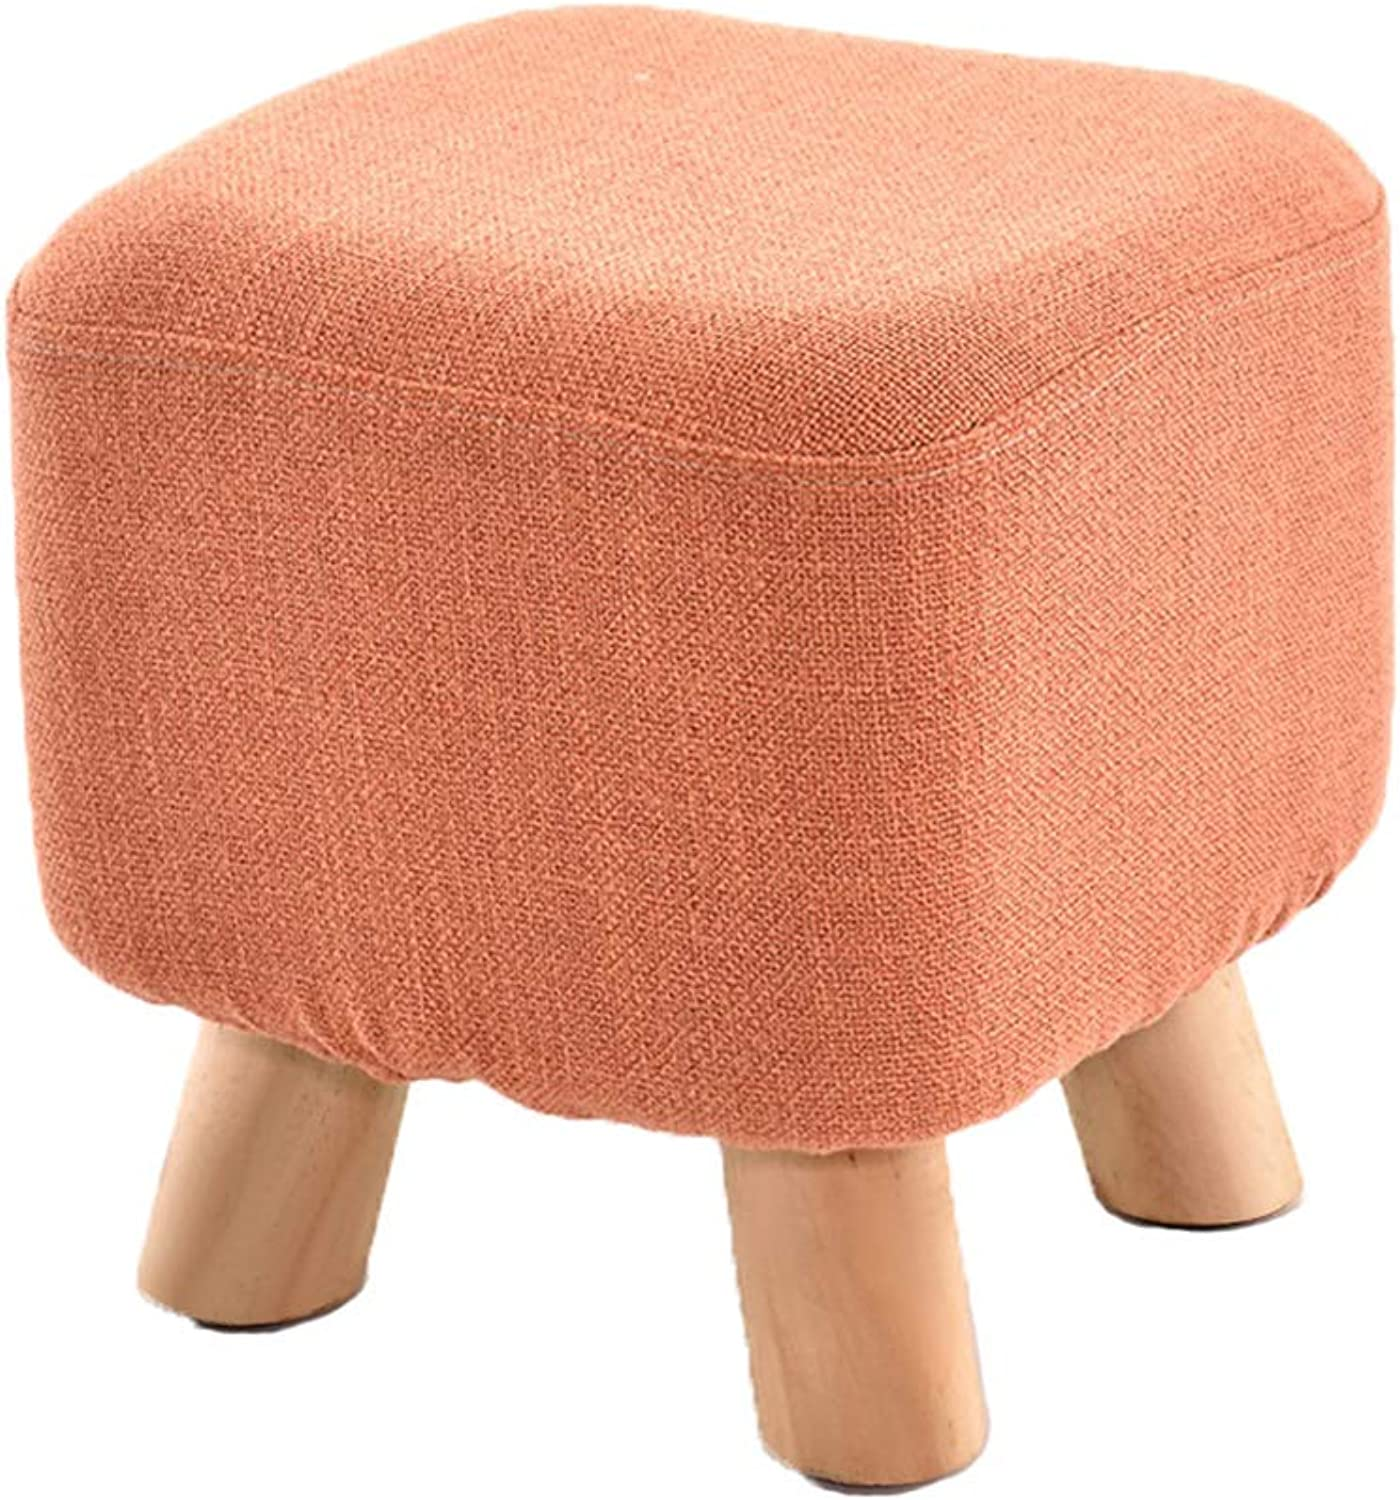 HLJ Personality Fashion Sofa Stool Simple Home Stool Comfortable Adult shoes Bench Creative Solid Wood Stool